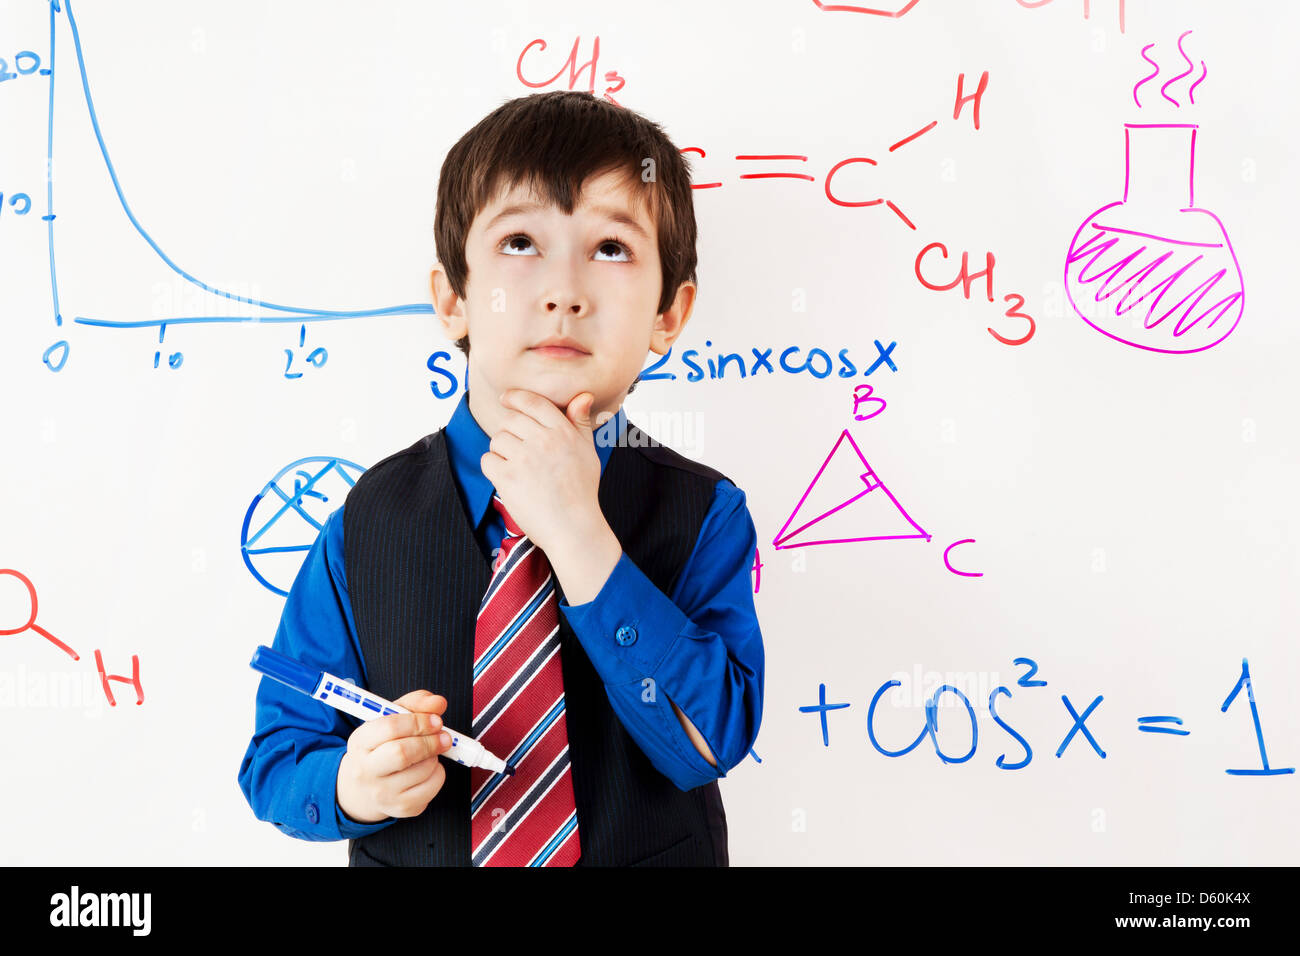 child prodigy in meditations at chalkboard - Stock Image